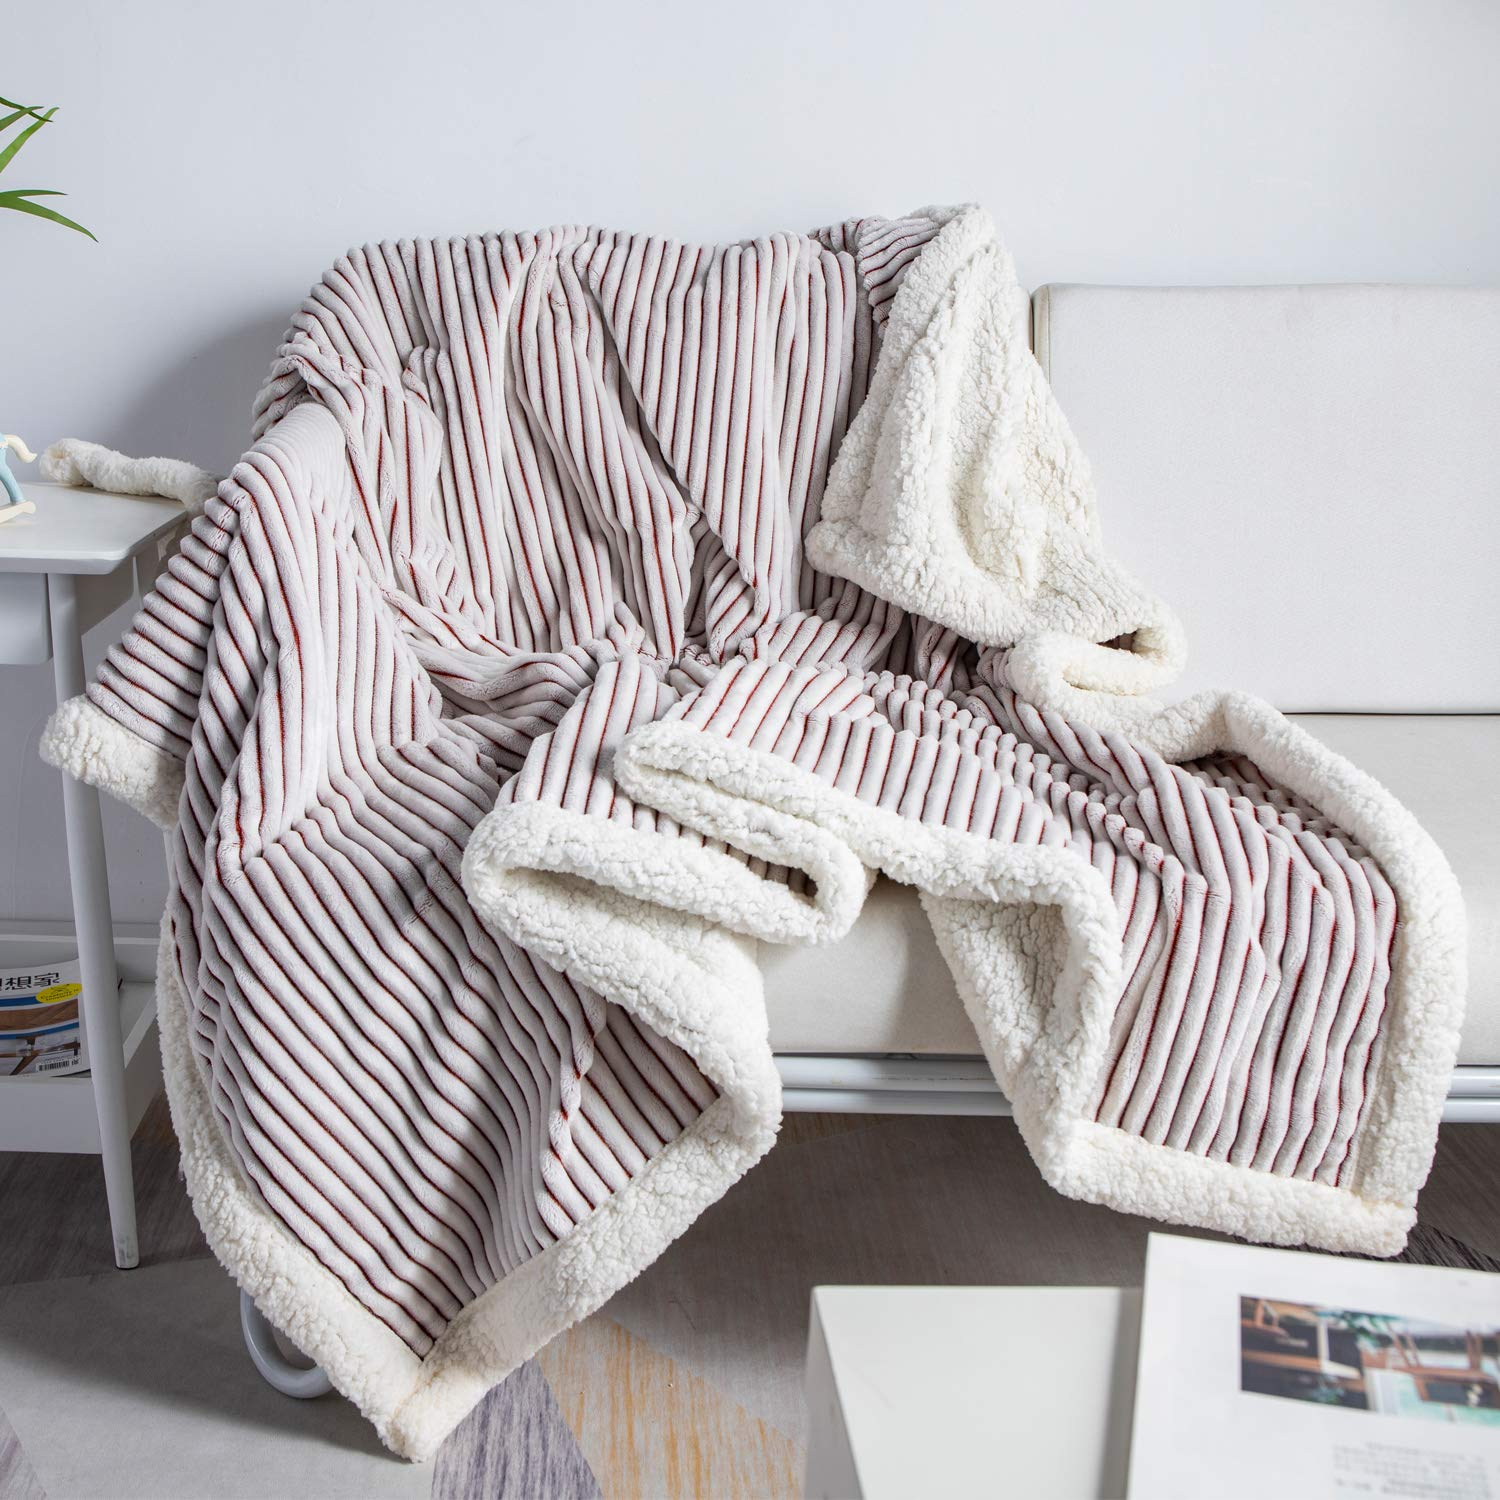 """DISSA Sherpa Fleece Blanket Throw Blanket Soft Blanket Plush Fluffy Blanket Warm Cozy with Brown and White Strip Perfect Throw for All Seasons for Couch Bed Sofa (Brown, 51"""" x63'')"""